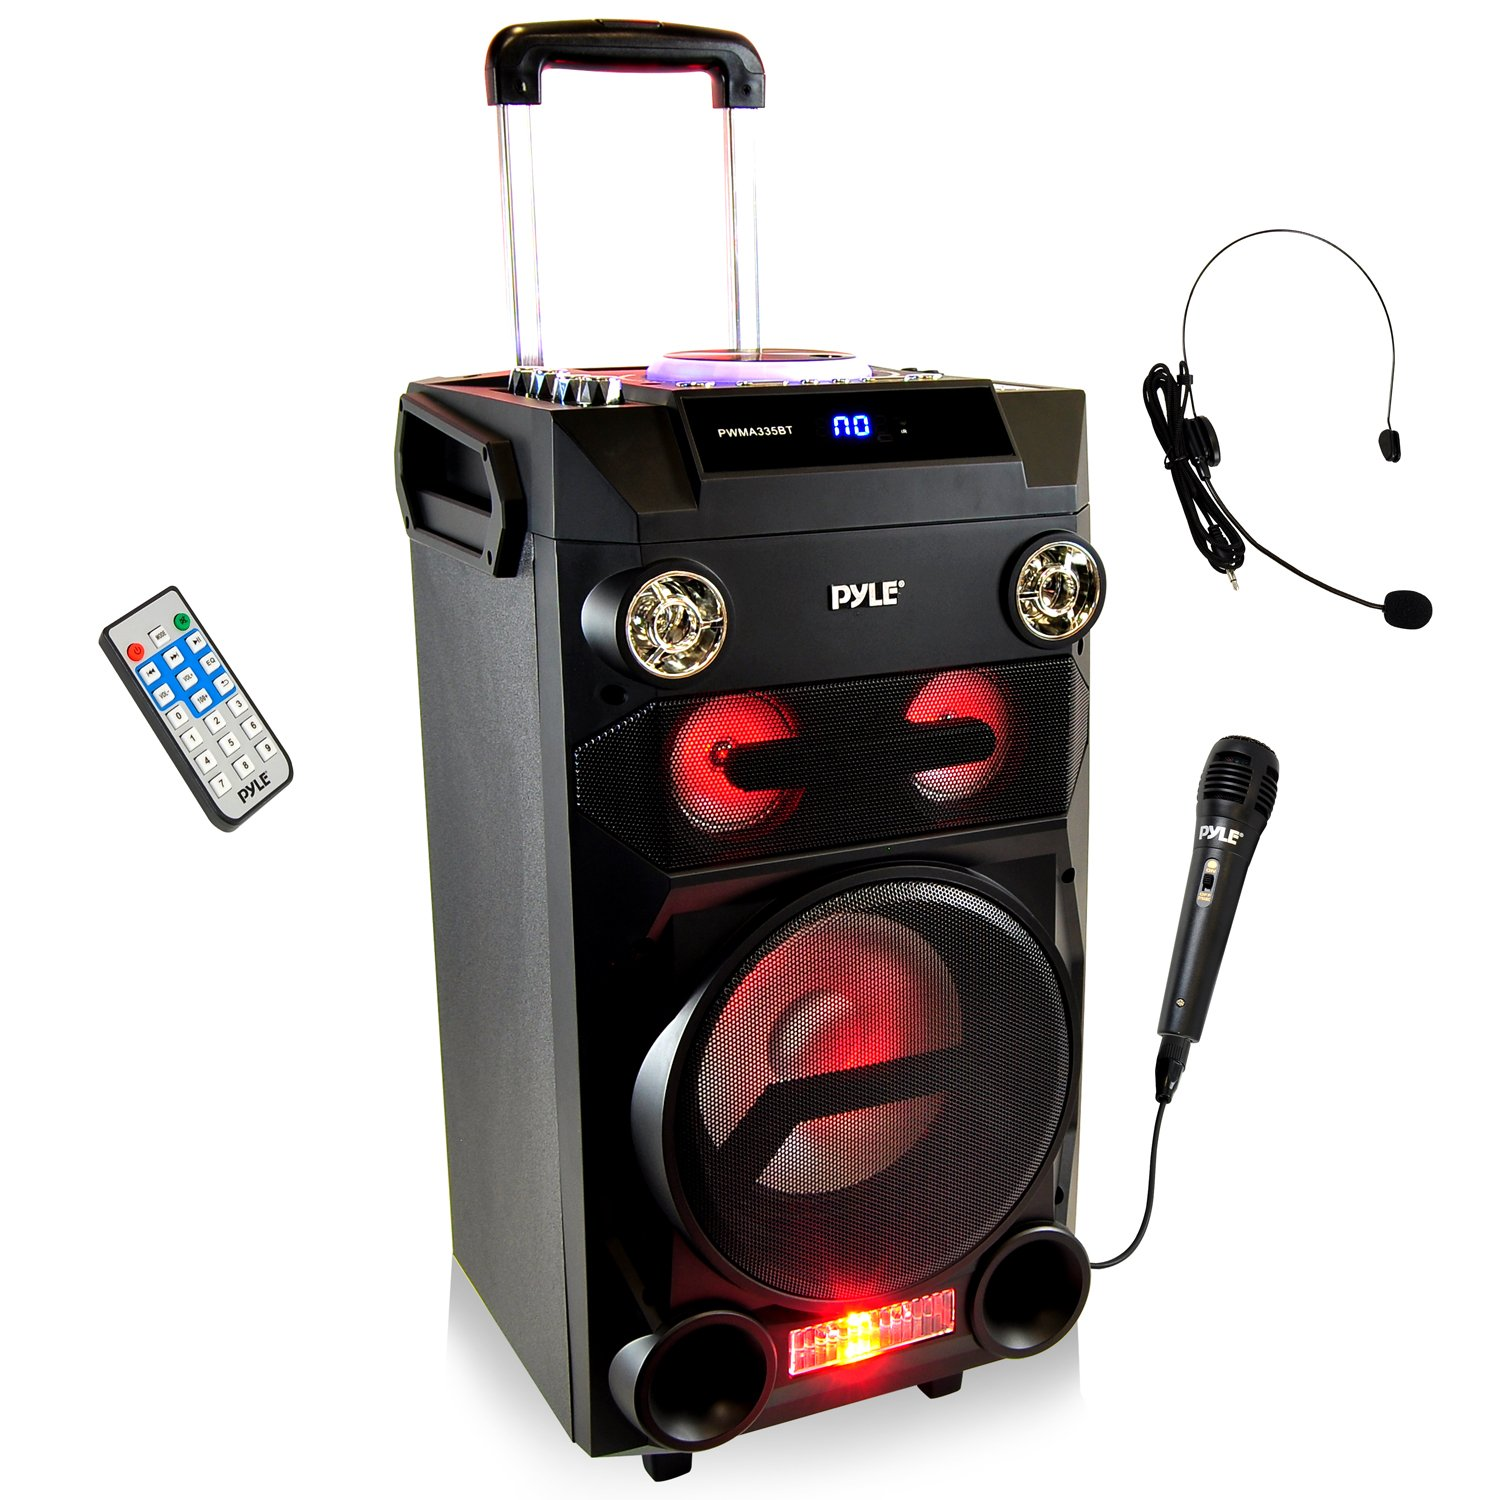 Portable Pa System With Wireless Microphone India Wire Center Wiring Electrical Junction Boxes Stock Photo Image 60765636 Amazon Com Pyle Outdoor Bluetooth Karaoke Loud Rh Battery Powered